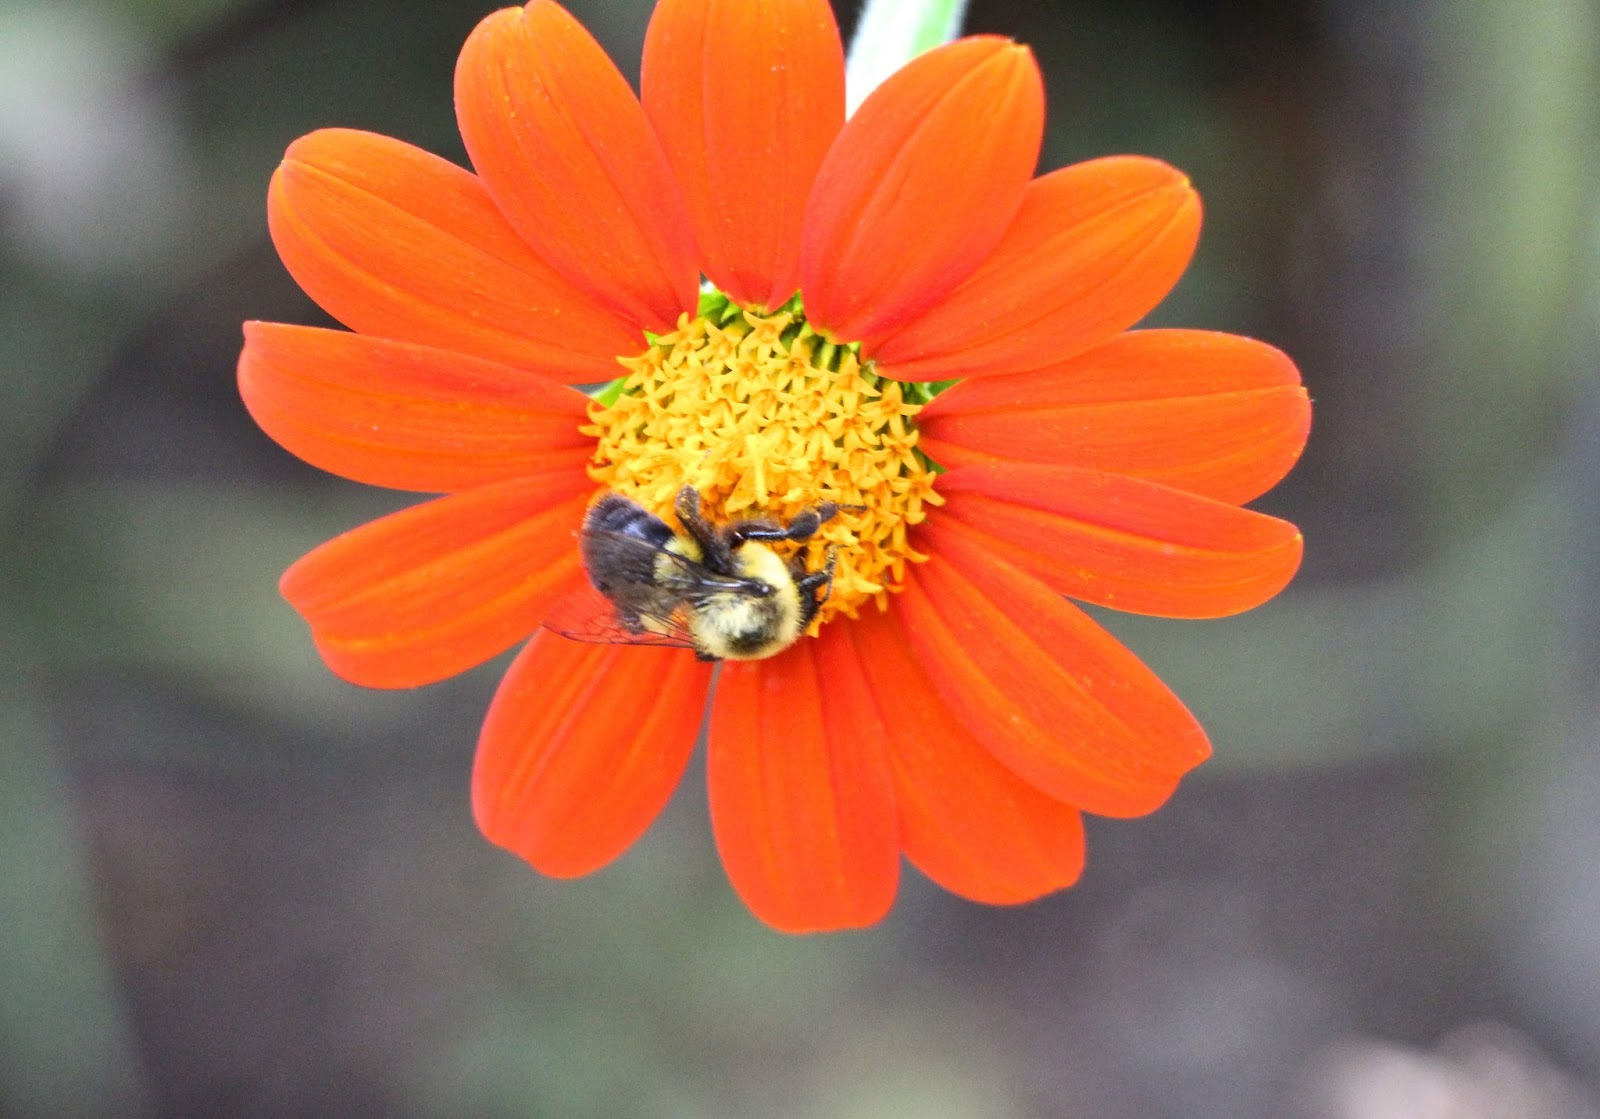 My Life in Gardens: For the love of Sun and Bees